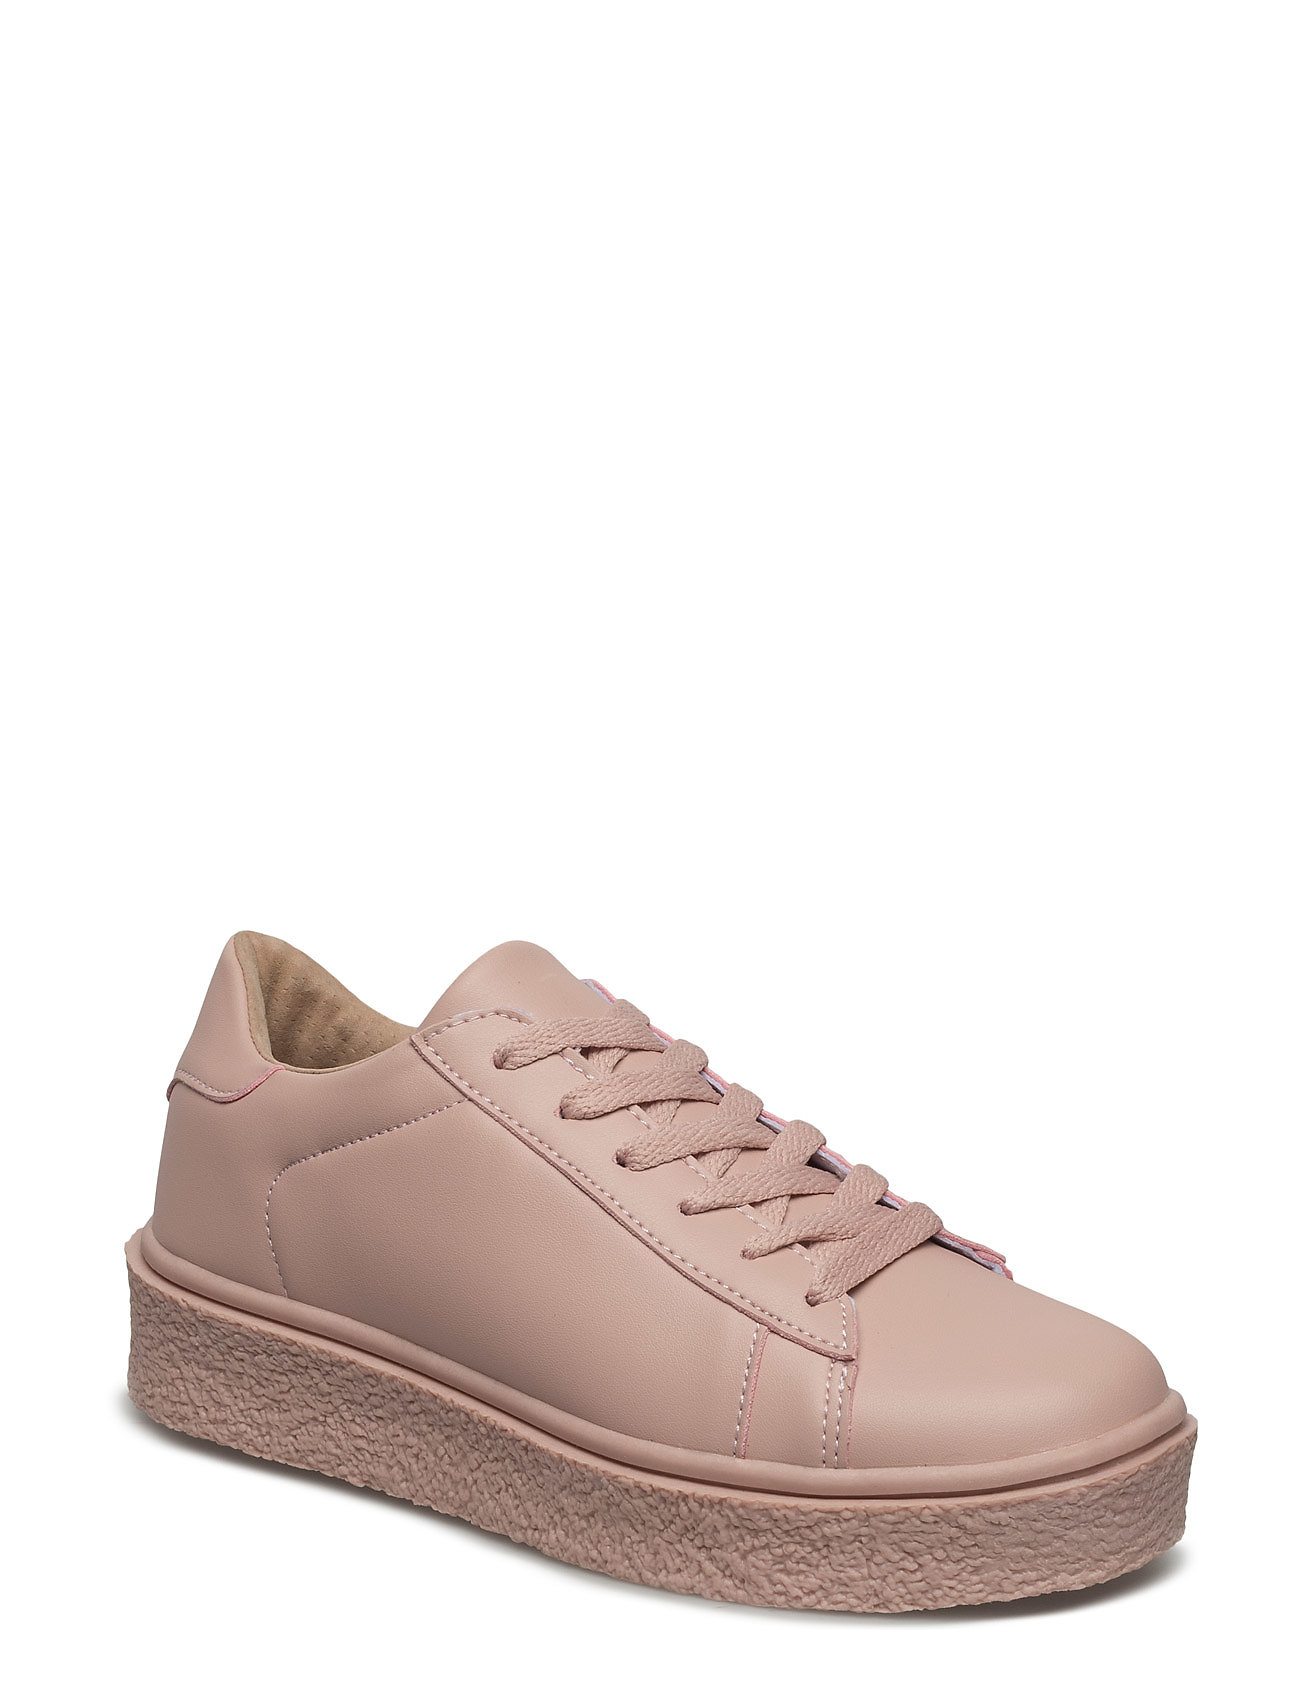 Laced Up Shoe Amj17 Bianco Sneakers til Damer i Rose